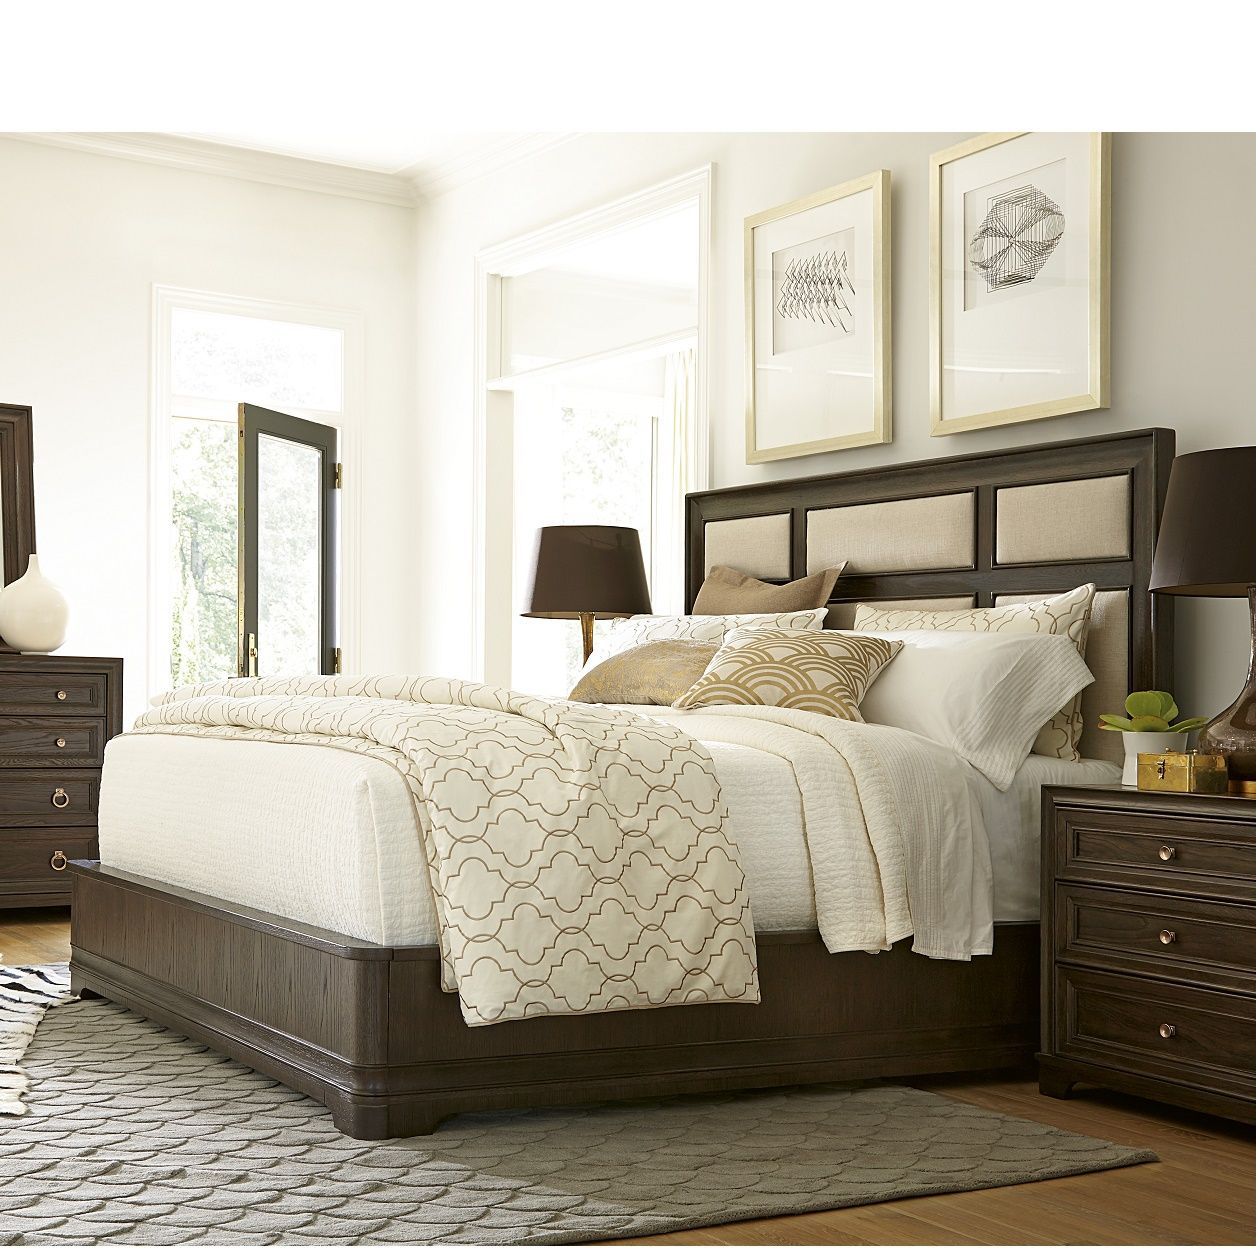 California Rustic Oak King Upholstered Panel Bed (With